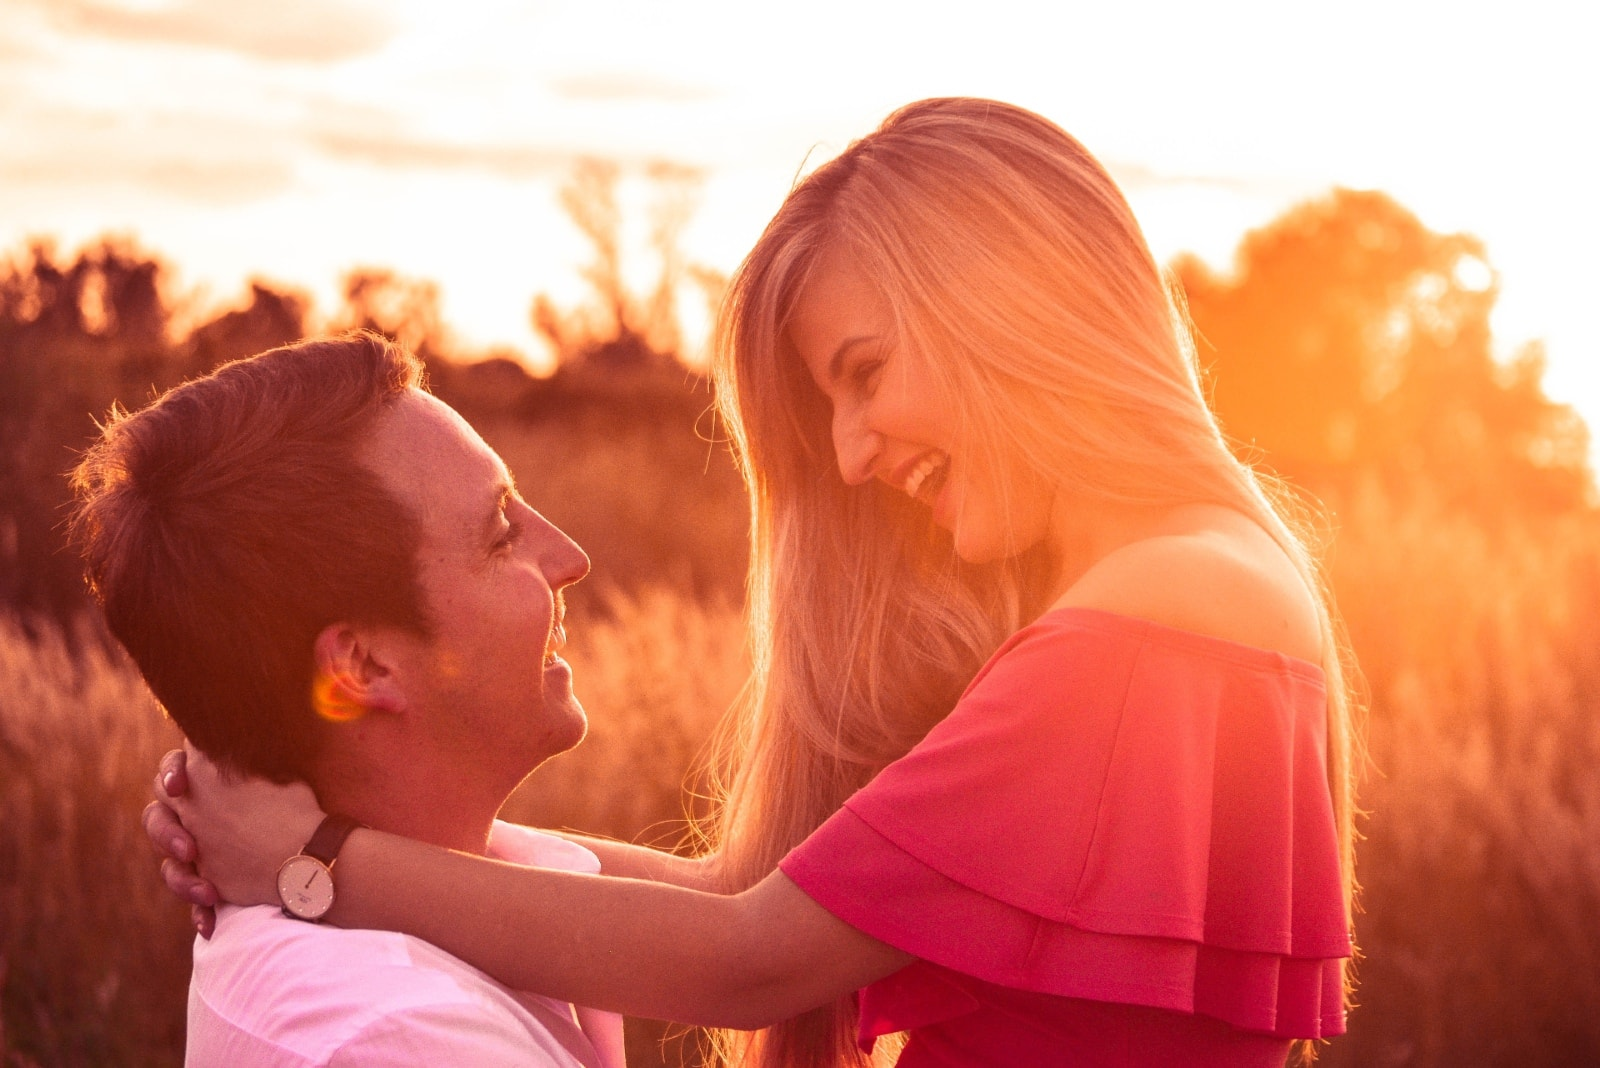 happy man carrying woman in pink top outdoor